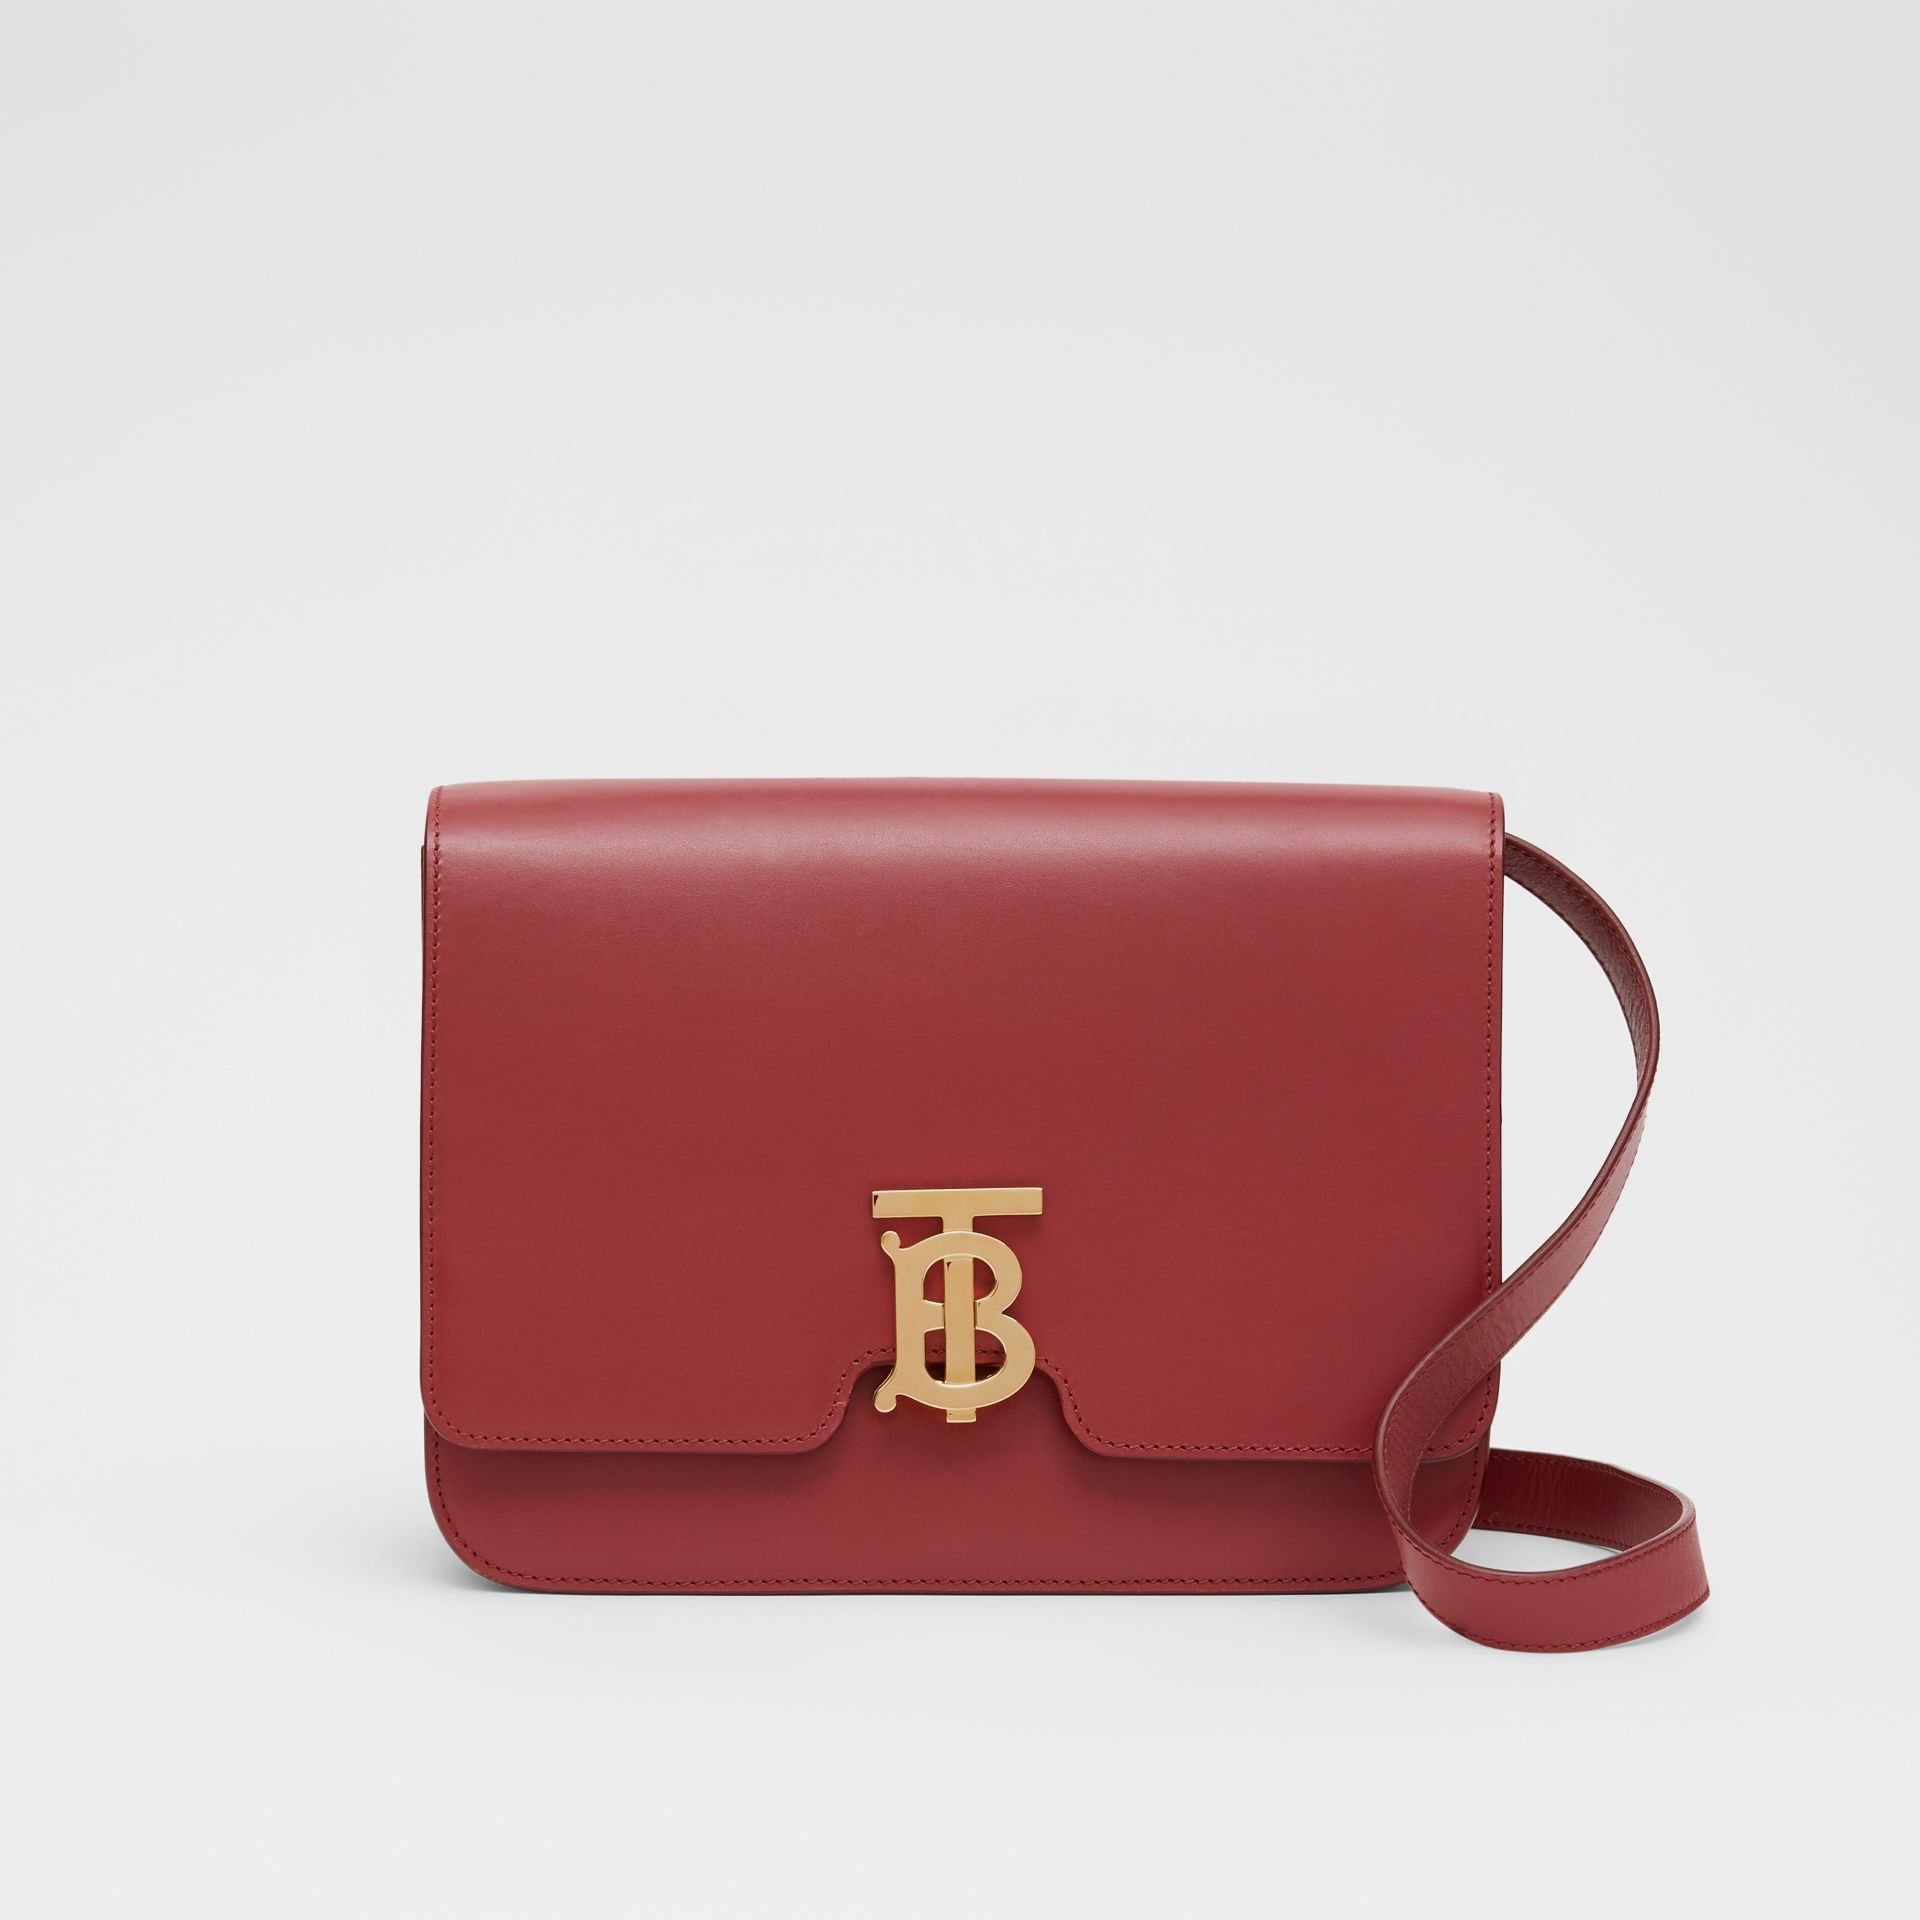 Medium Leather TB Bag in Crimson - Women | Burberry Canada - gallery image 0